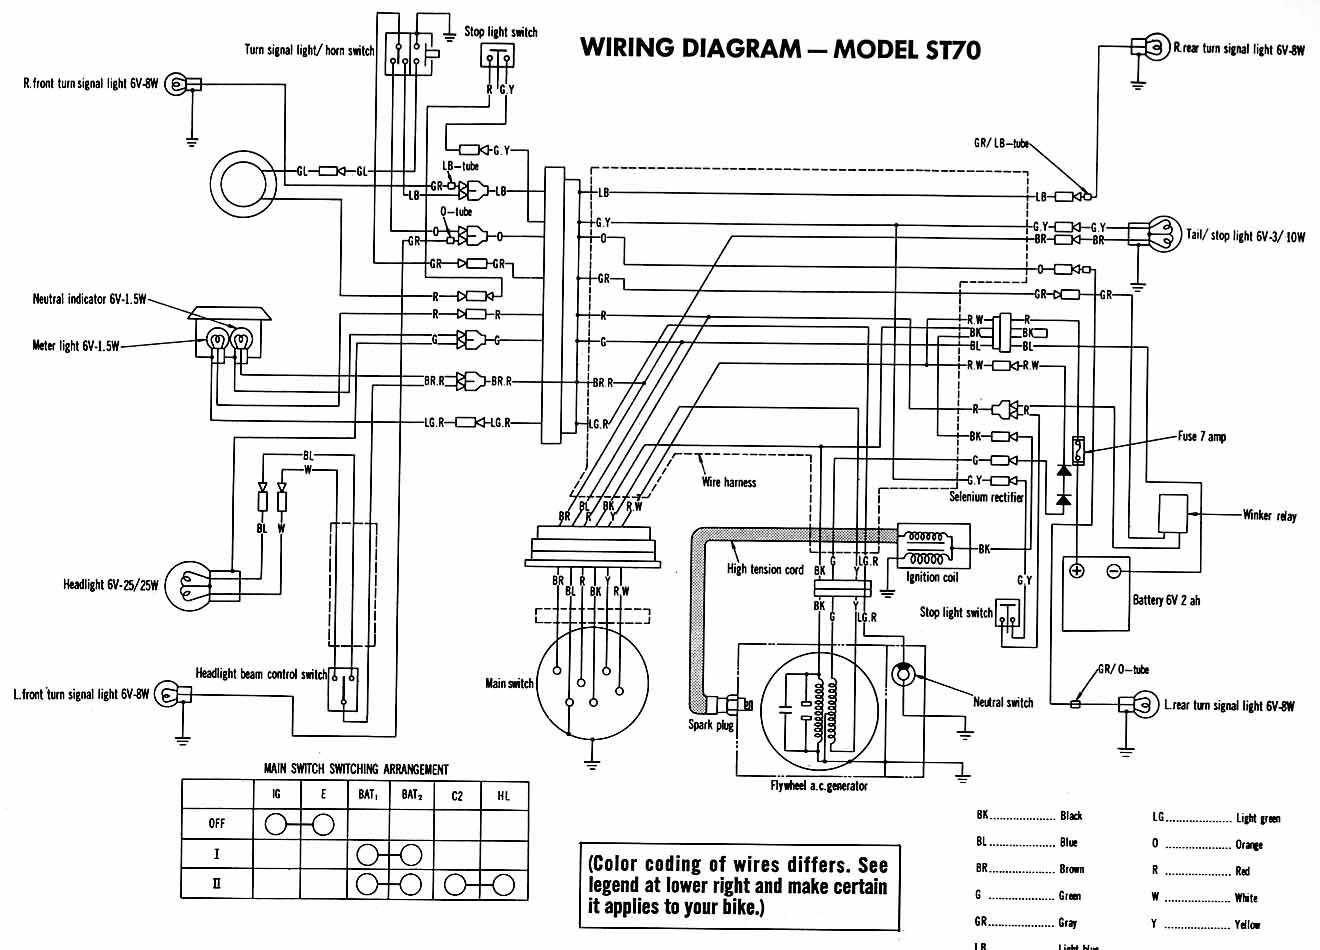 Honda St70 Motorcycle Wiring Diagram on Yamaha R6 Wiring Diagram